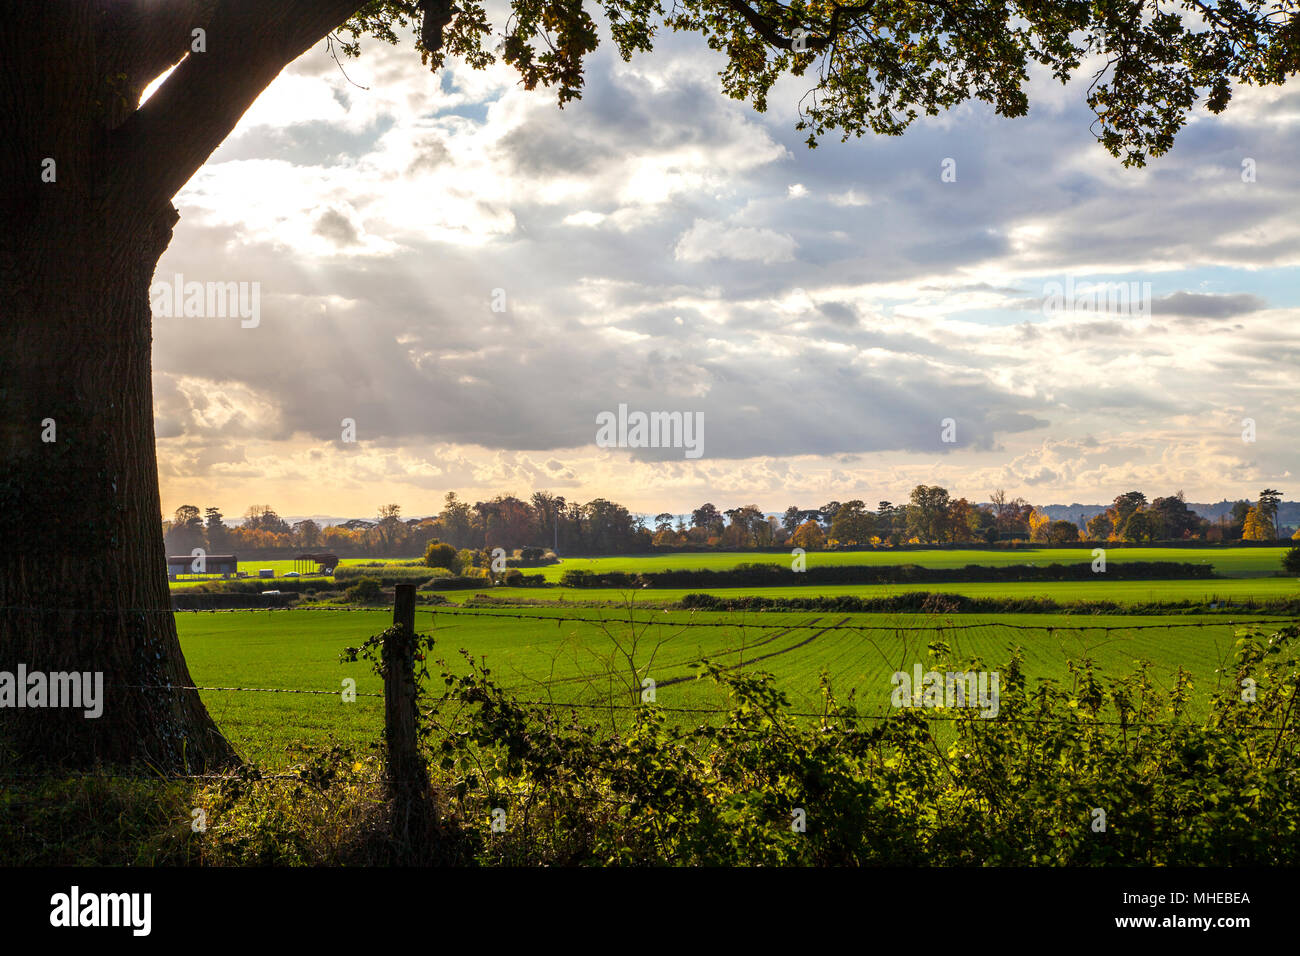 Beyond a barbed-wire fence lies a vibrant English field on a stormy day - Stock Image